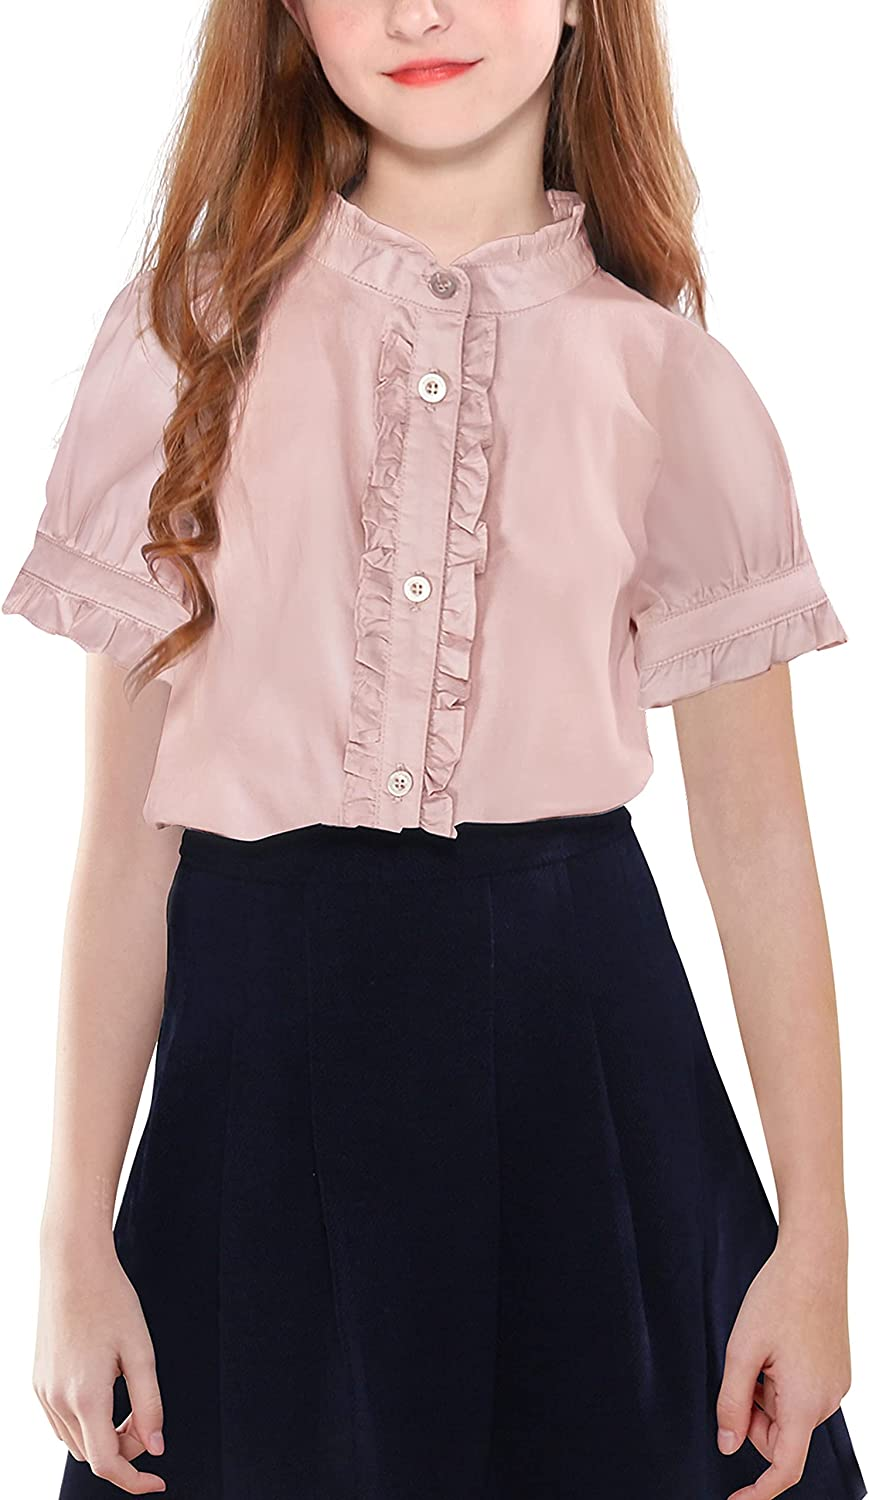 maoo garden Girls Casual All stores are sold Short-Sleeve Uniform Cotton Blouses Bargain sale Shi